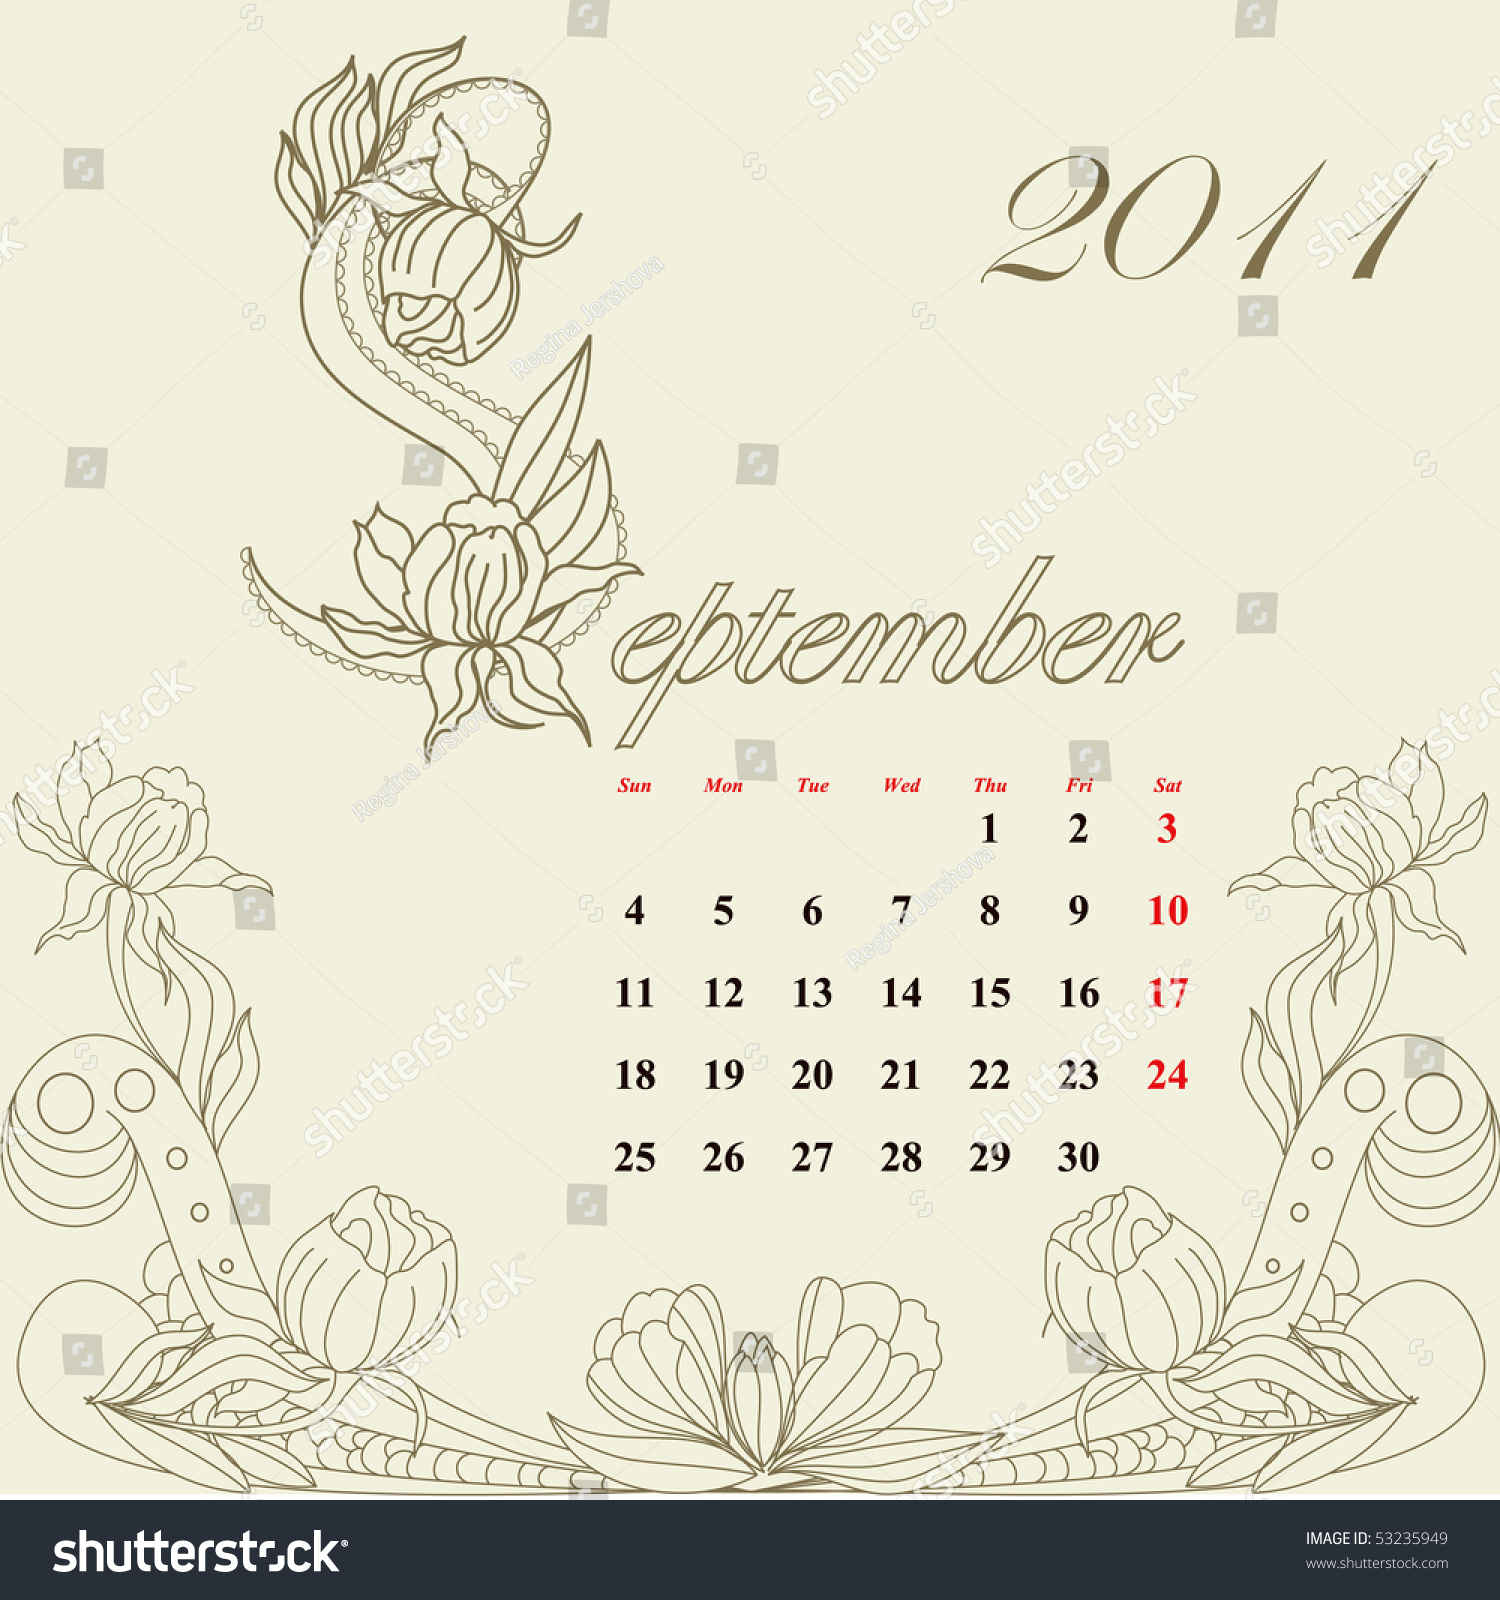 Calendar Vintage Vector : Vintage calendar for september stock vector